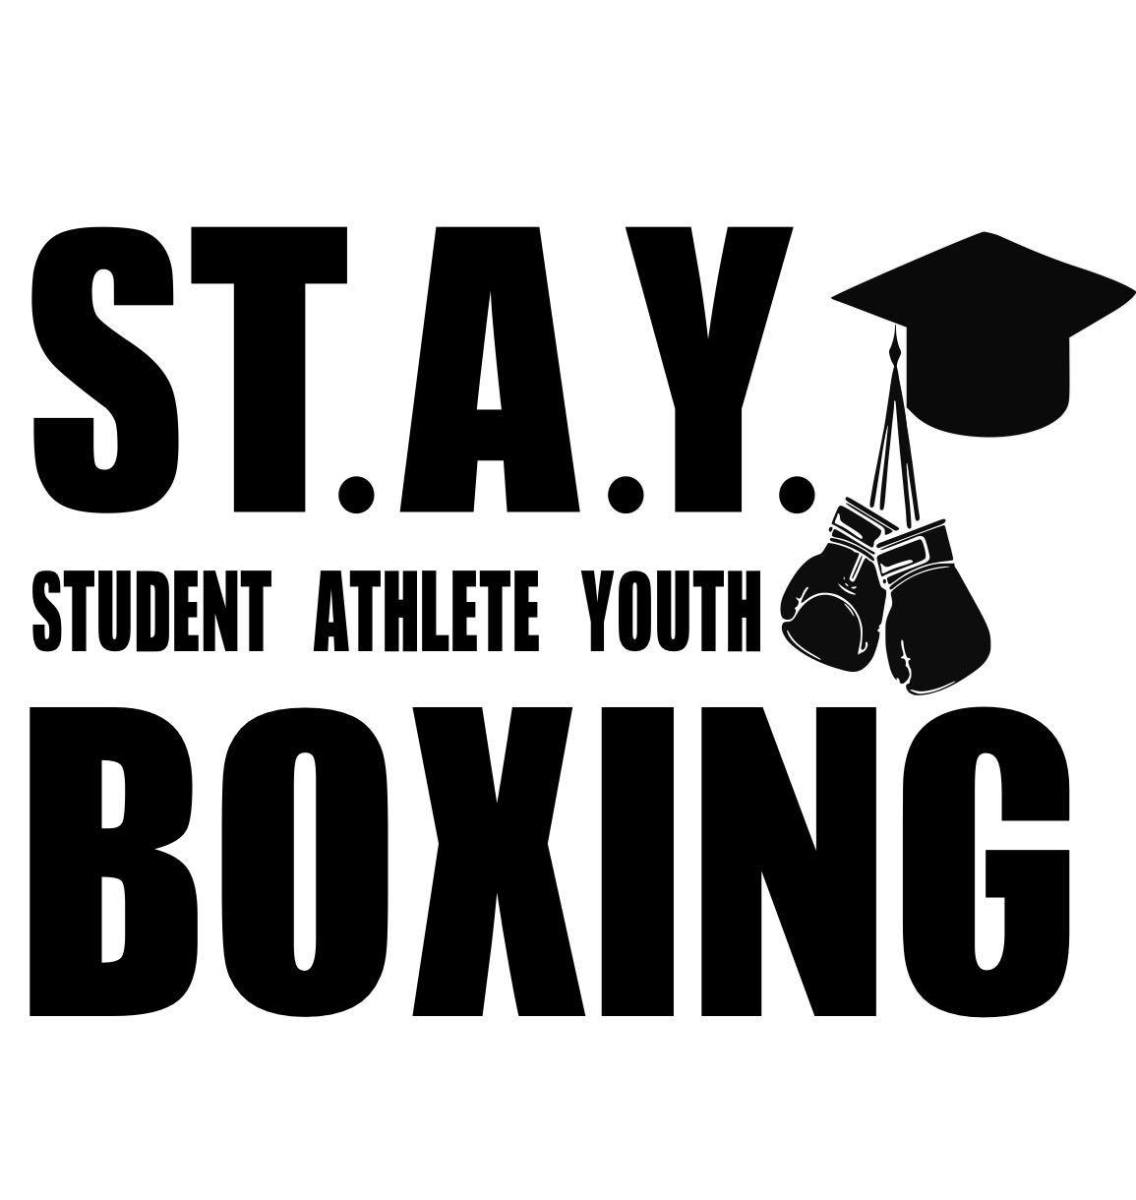 FREE Boxing After School Program for Kids!